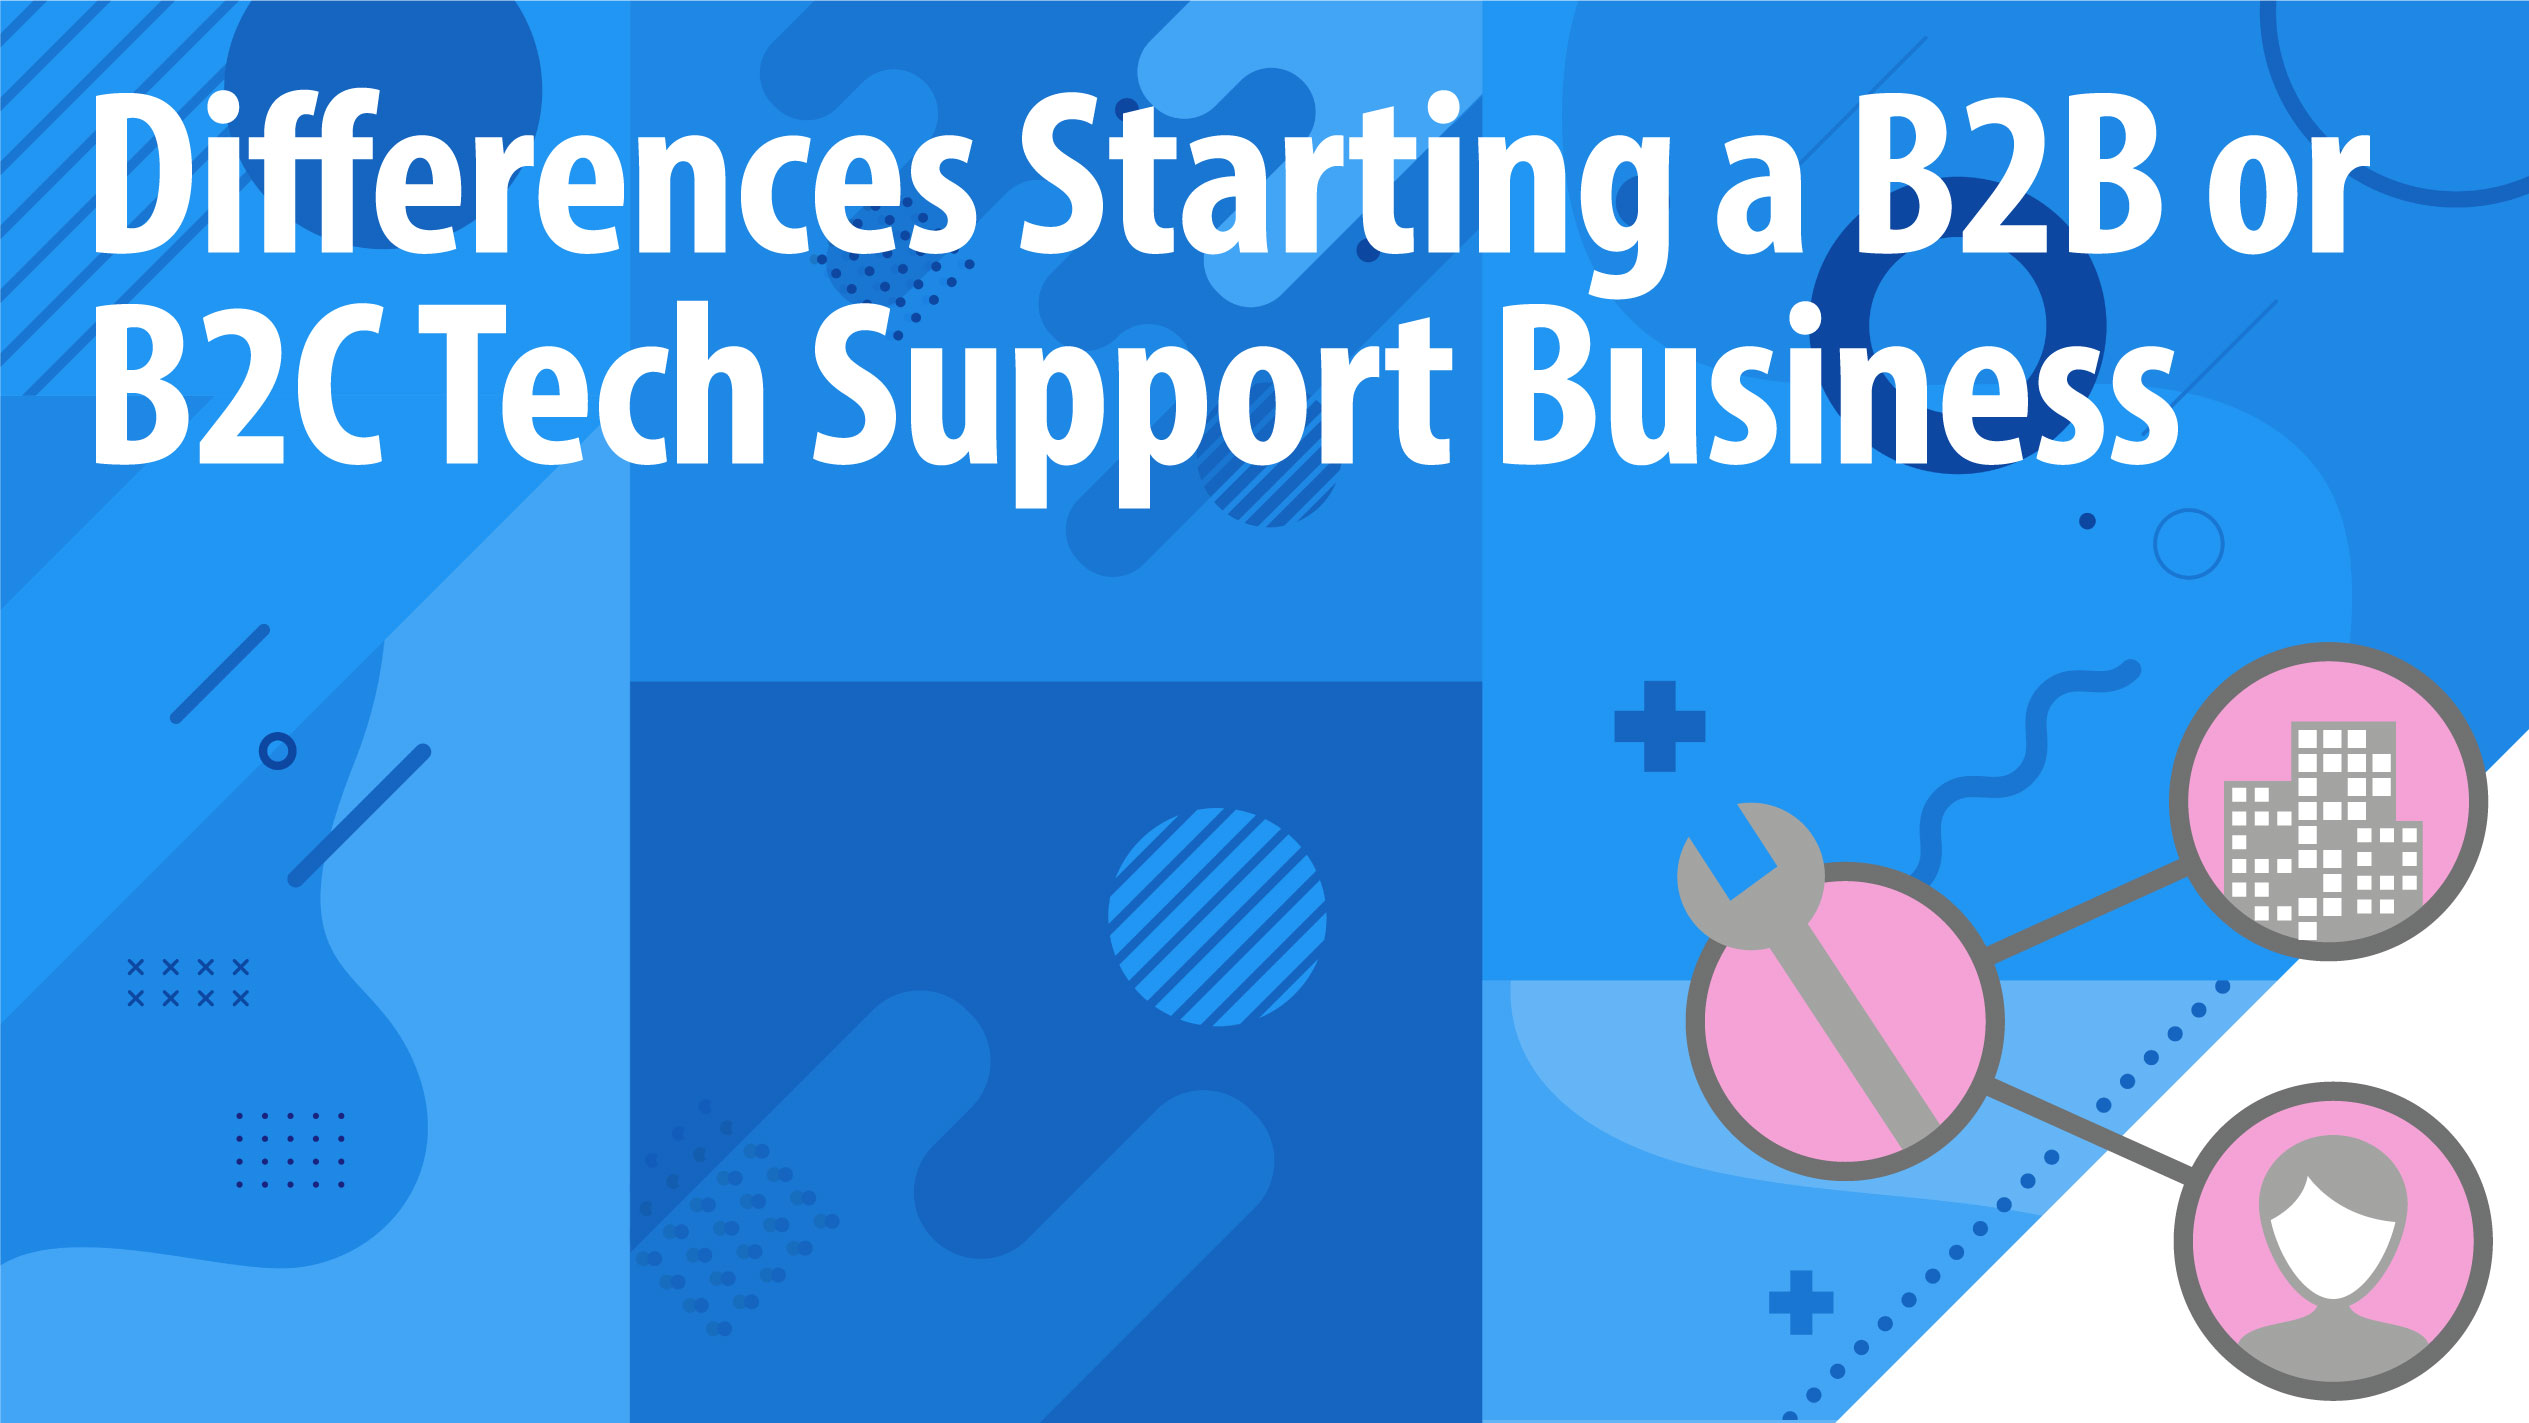 Differences Starting a B2B or B2C Tech Support Business